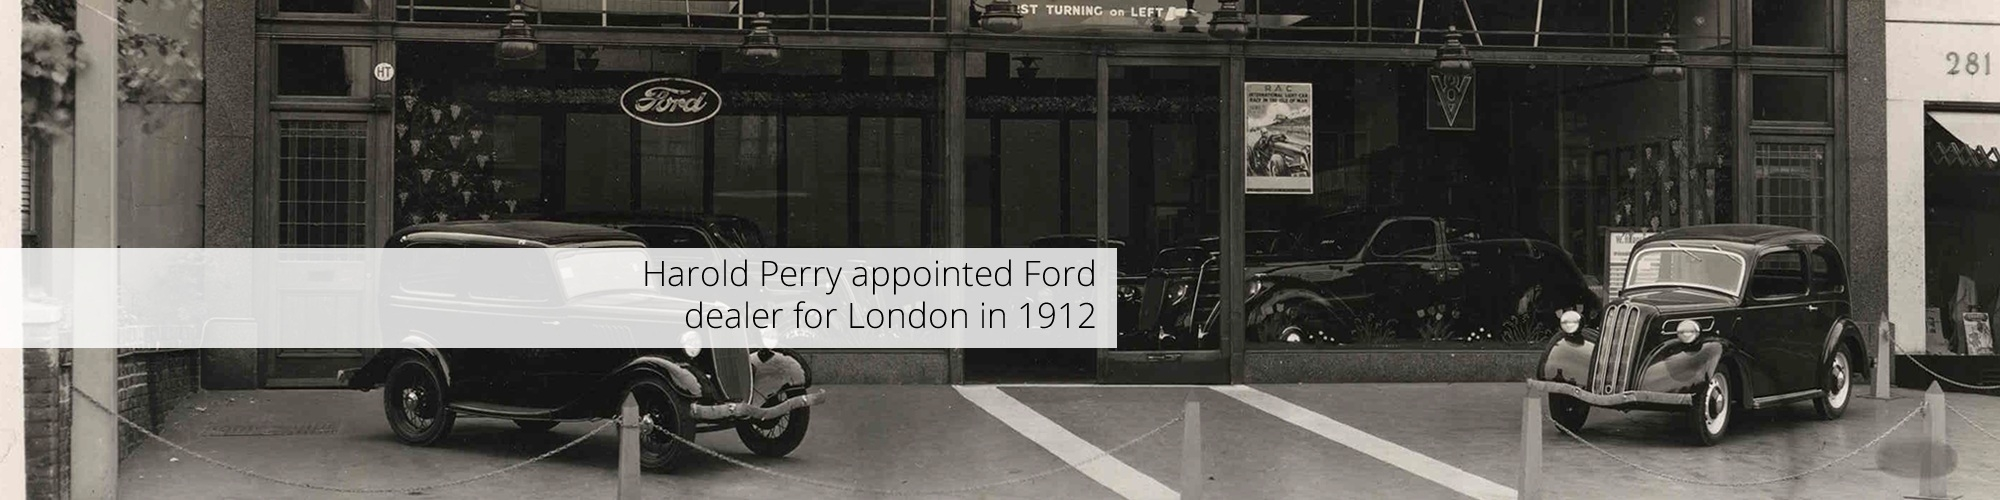 Harold Perrys appointed London Ford dealer in 1912